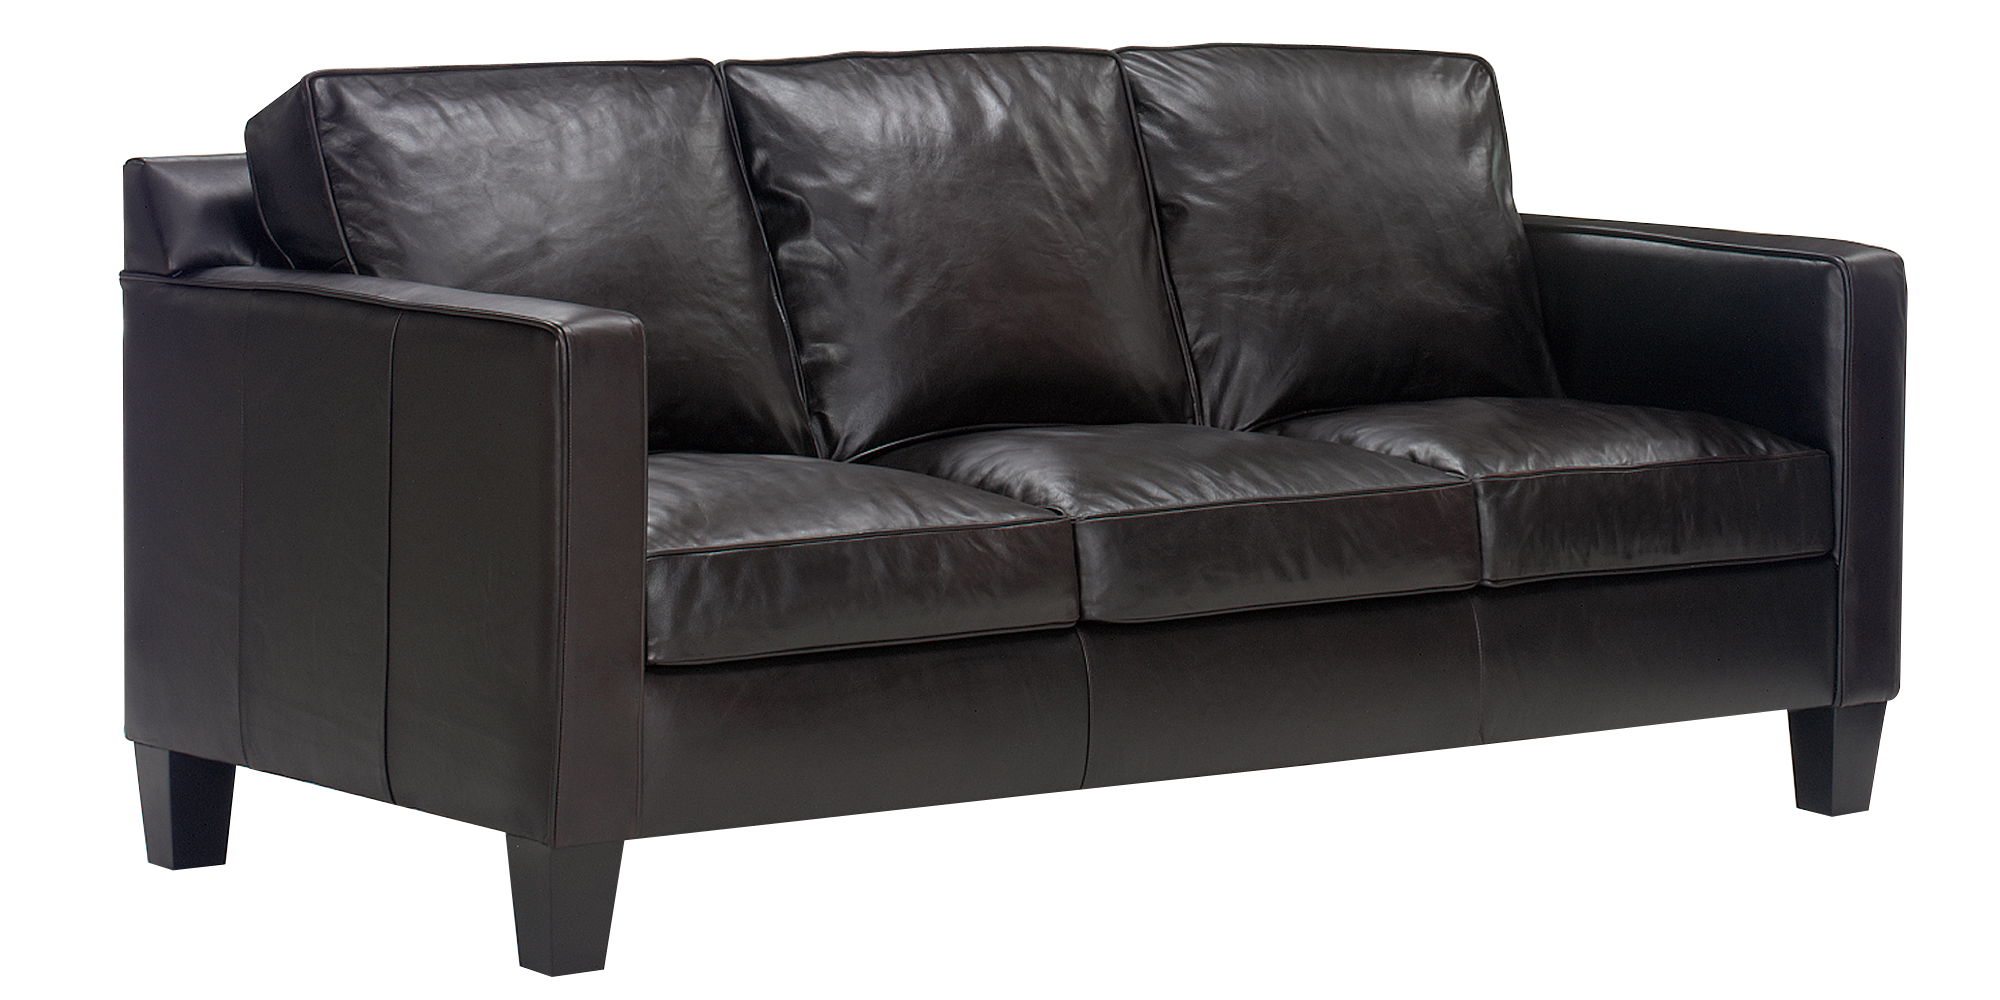 Apartment studio size modern european track arm leather for Apartment size leather sofa